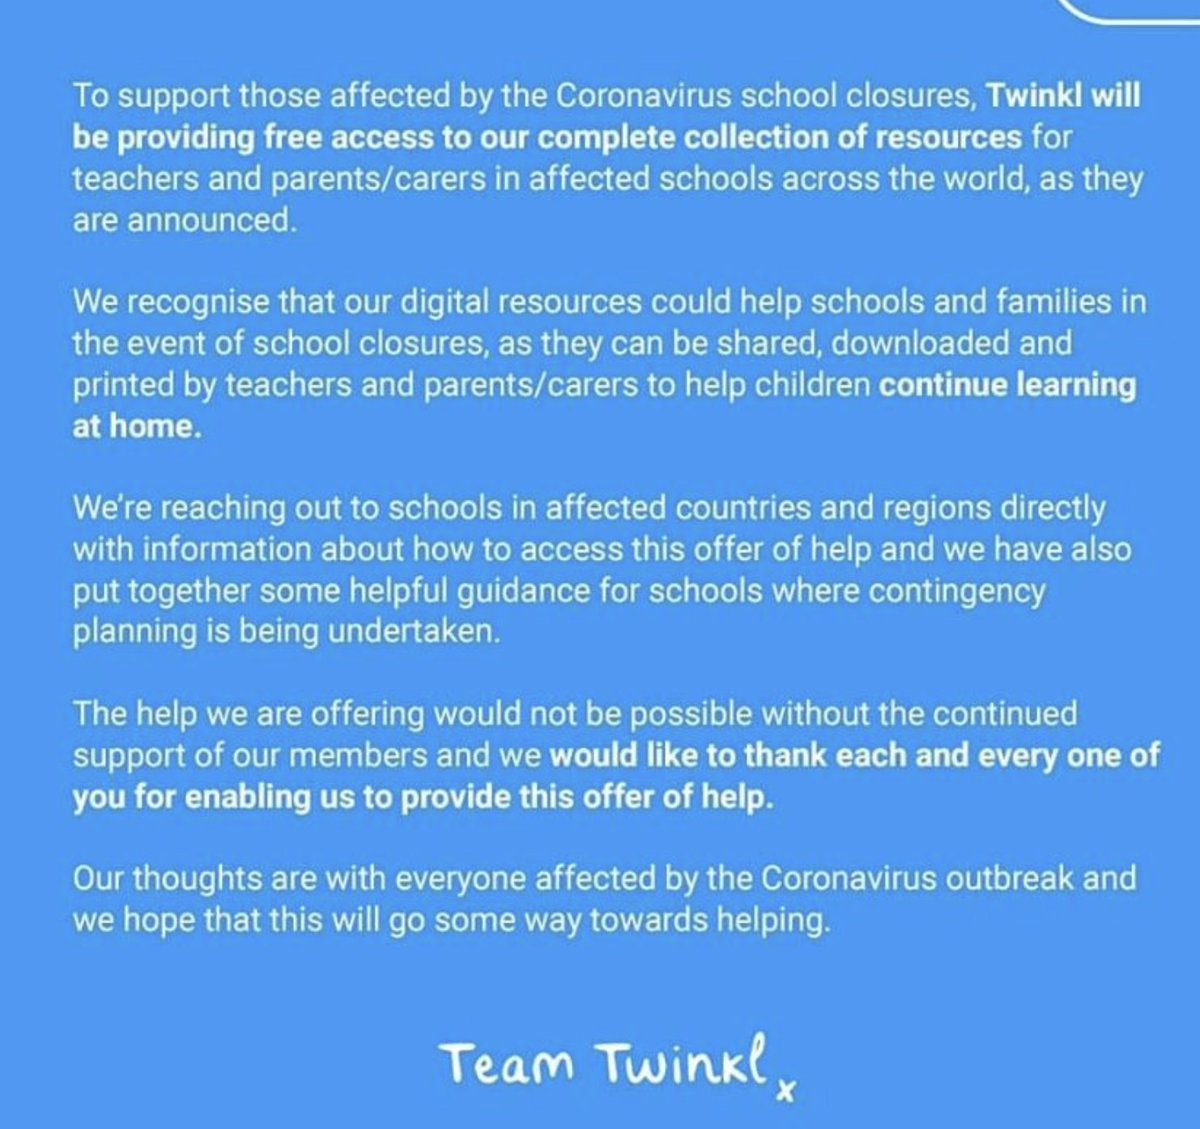 Well done @twinklresources This will no doubt be appreciated by those schools affected.